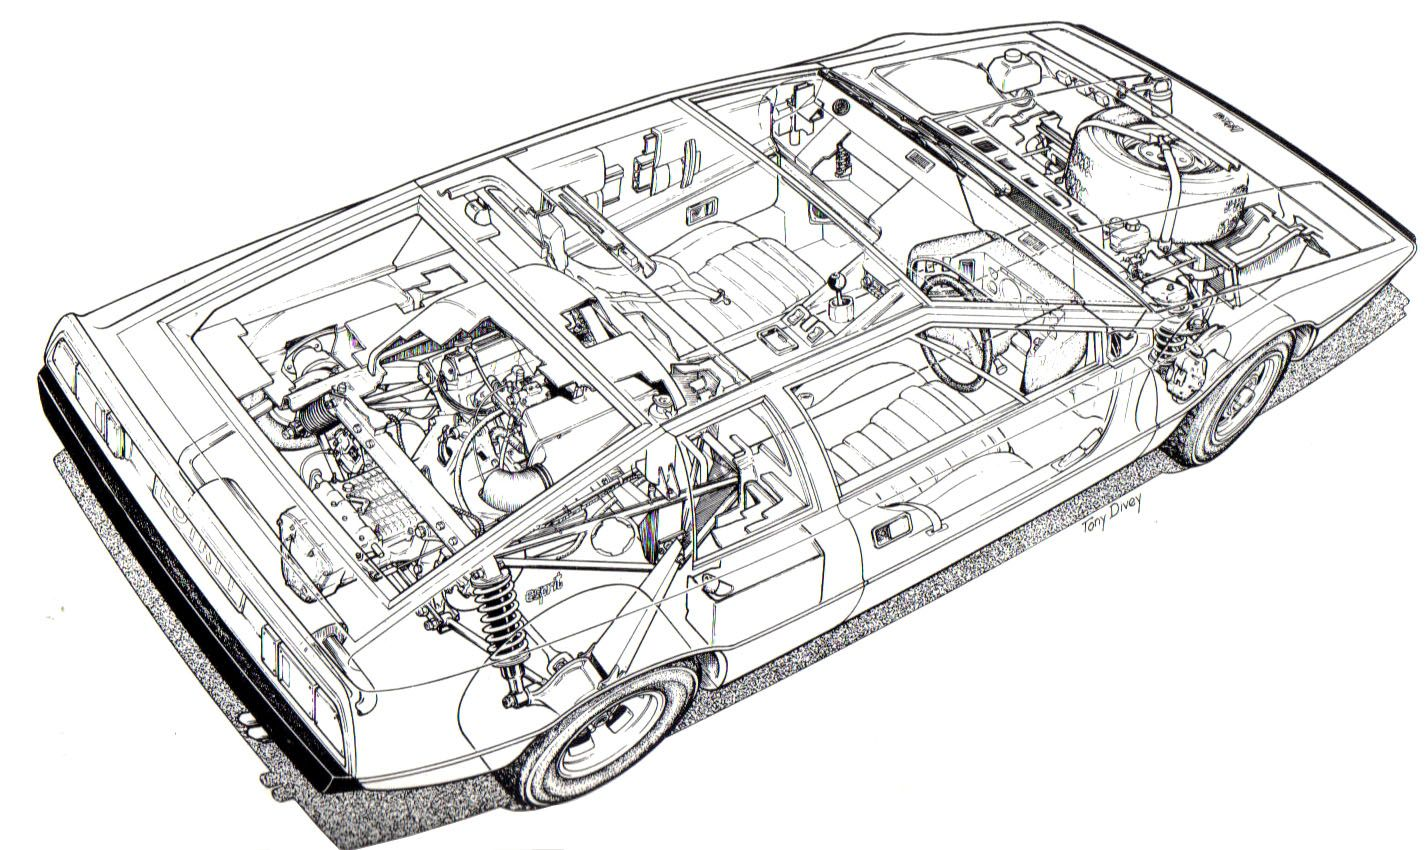 Lotus Esprit Prototype Cutaway Drawing Technical